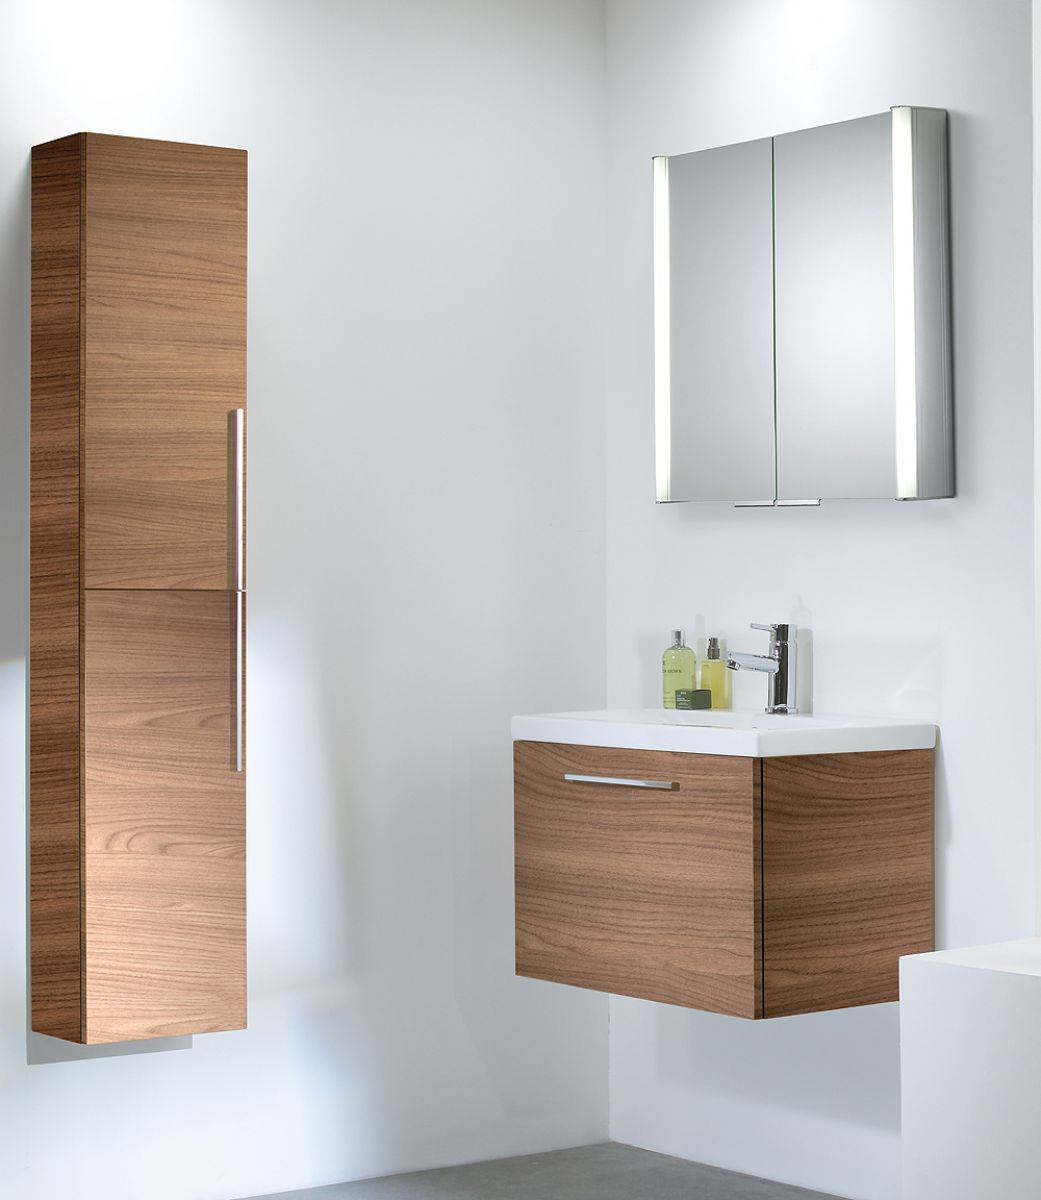 Bathroom Cupboards Wall Mounted Freestanding Storage Units within proportions 1041 X 1200